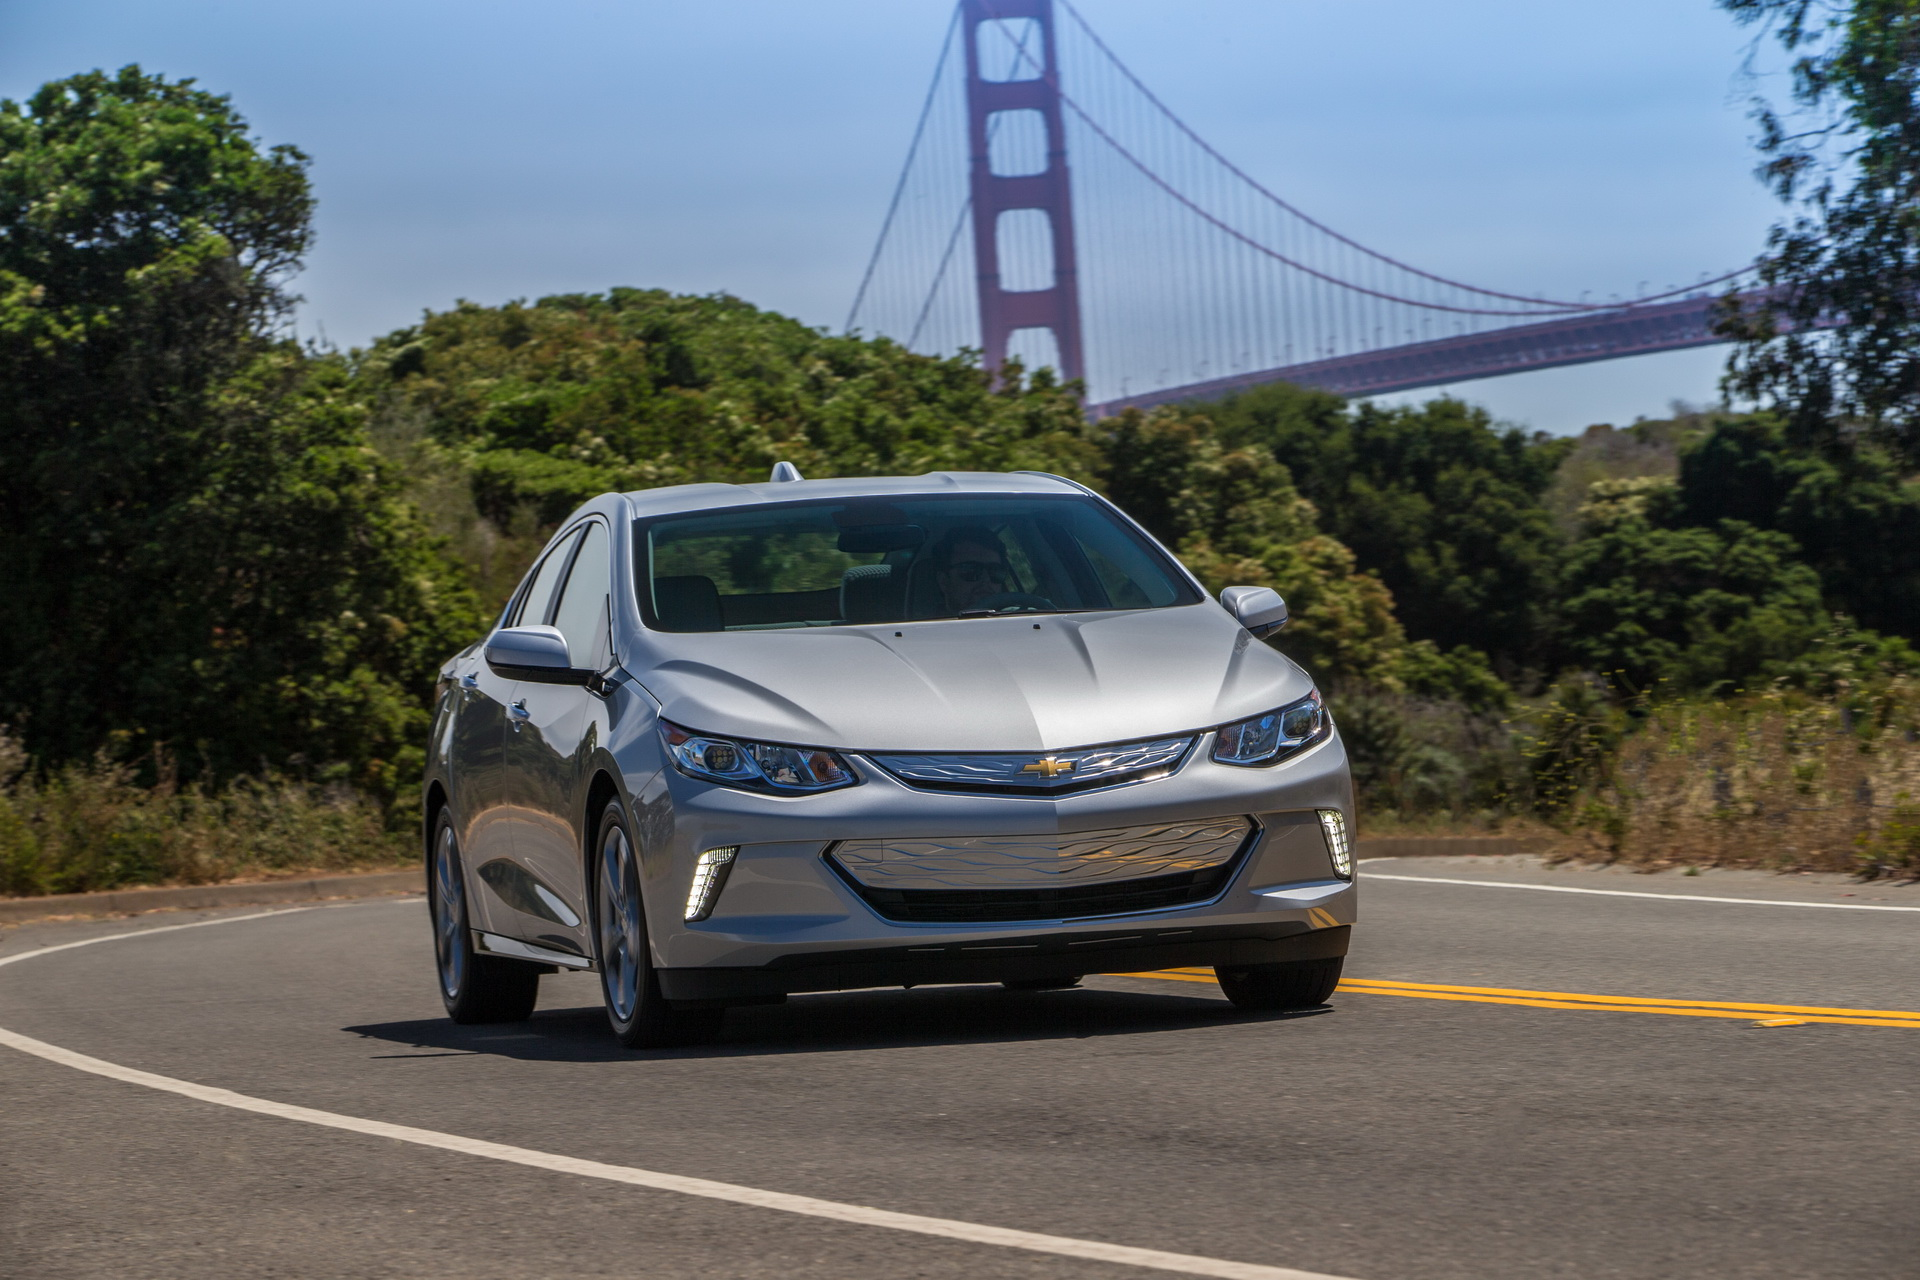 Chevy Volt gets faster charging system for 2019